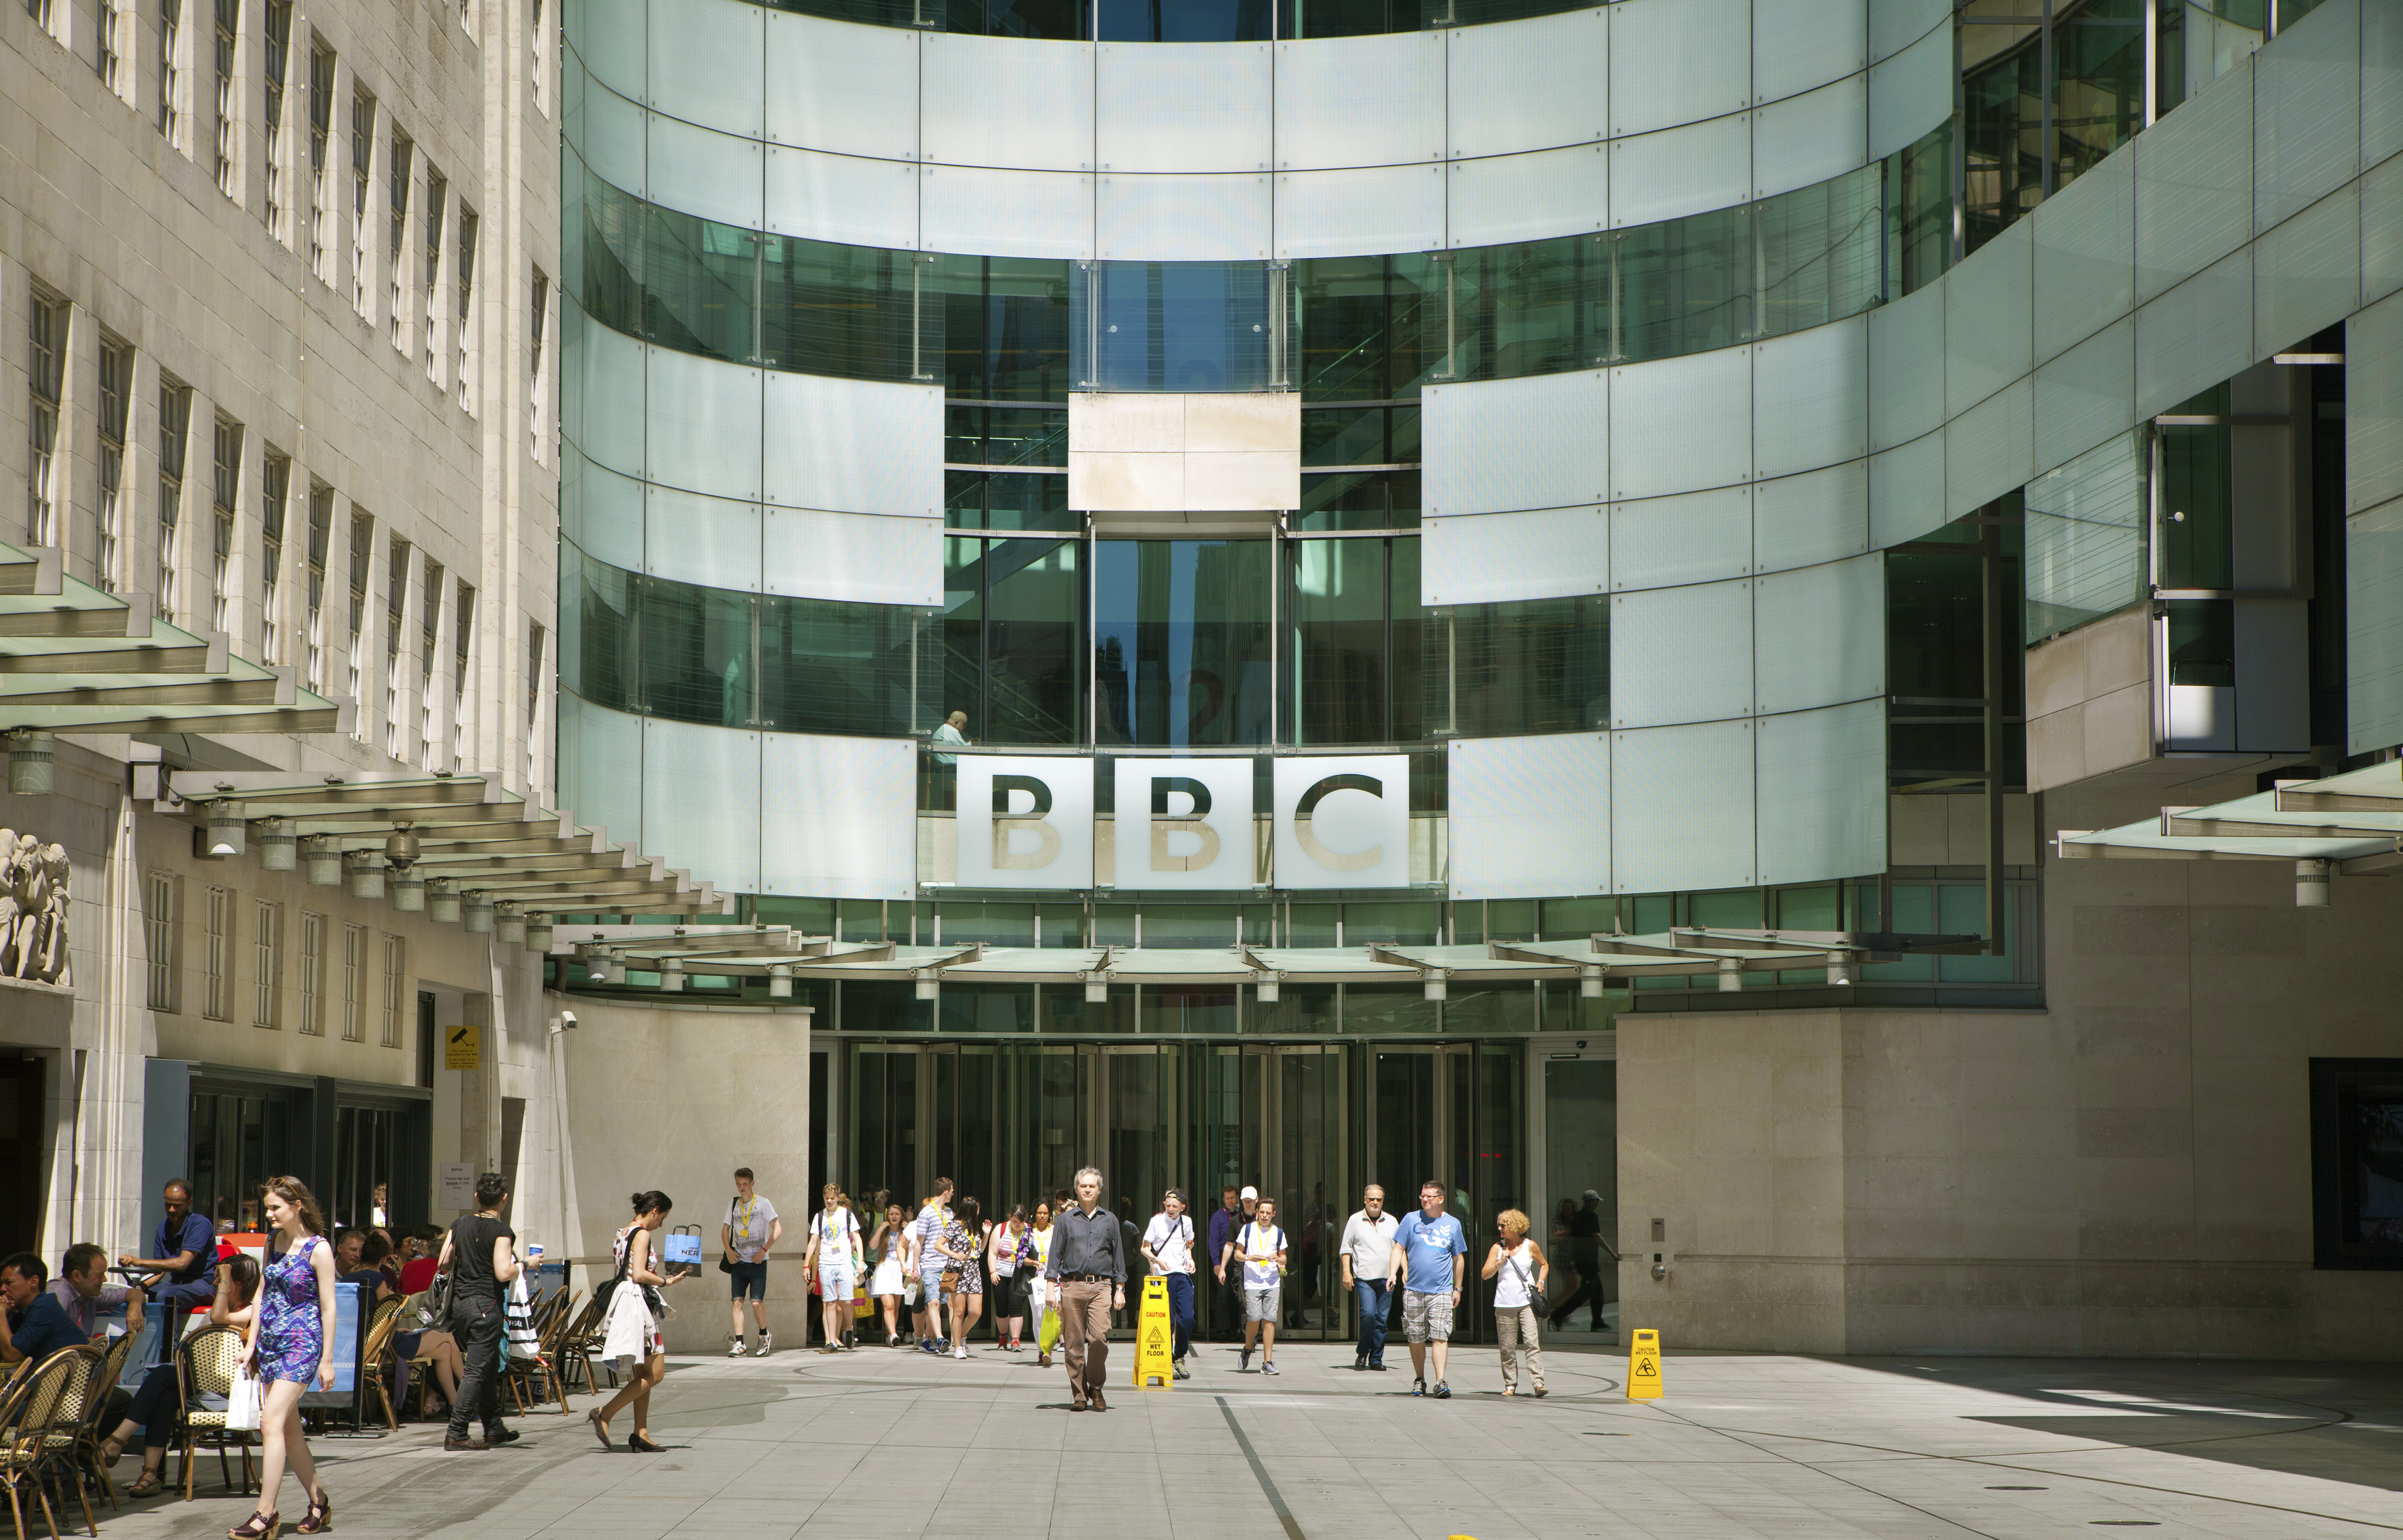 The annual fee for BBC programming will increase to £147 from £145.50 on April 1 this year (iStock)